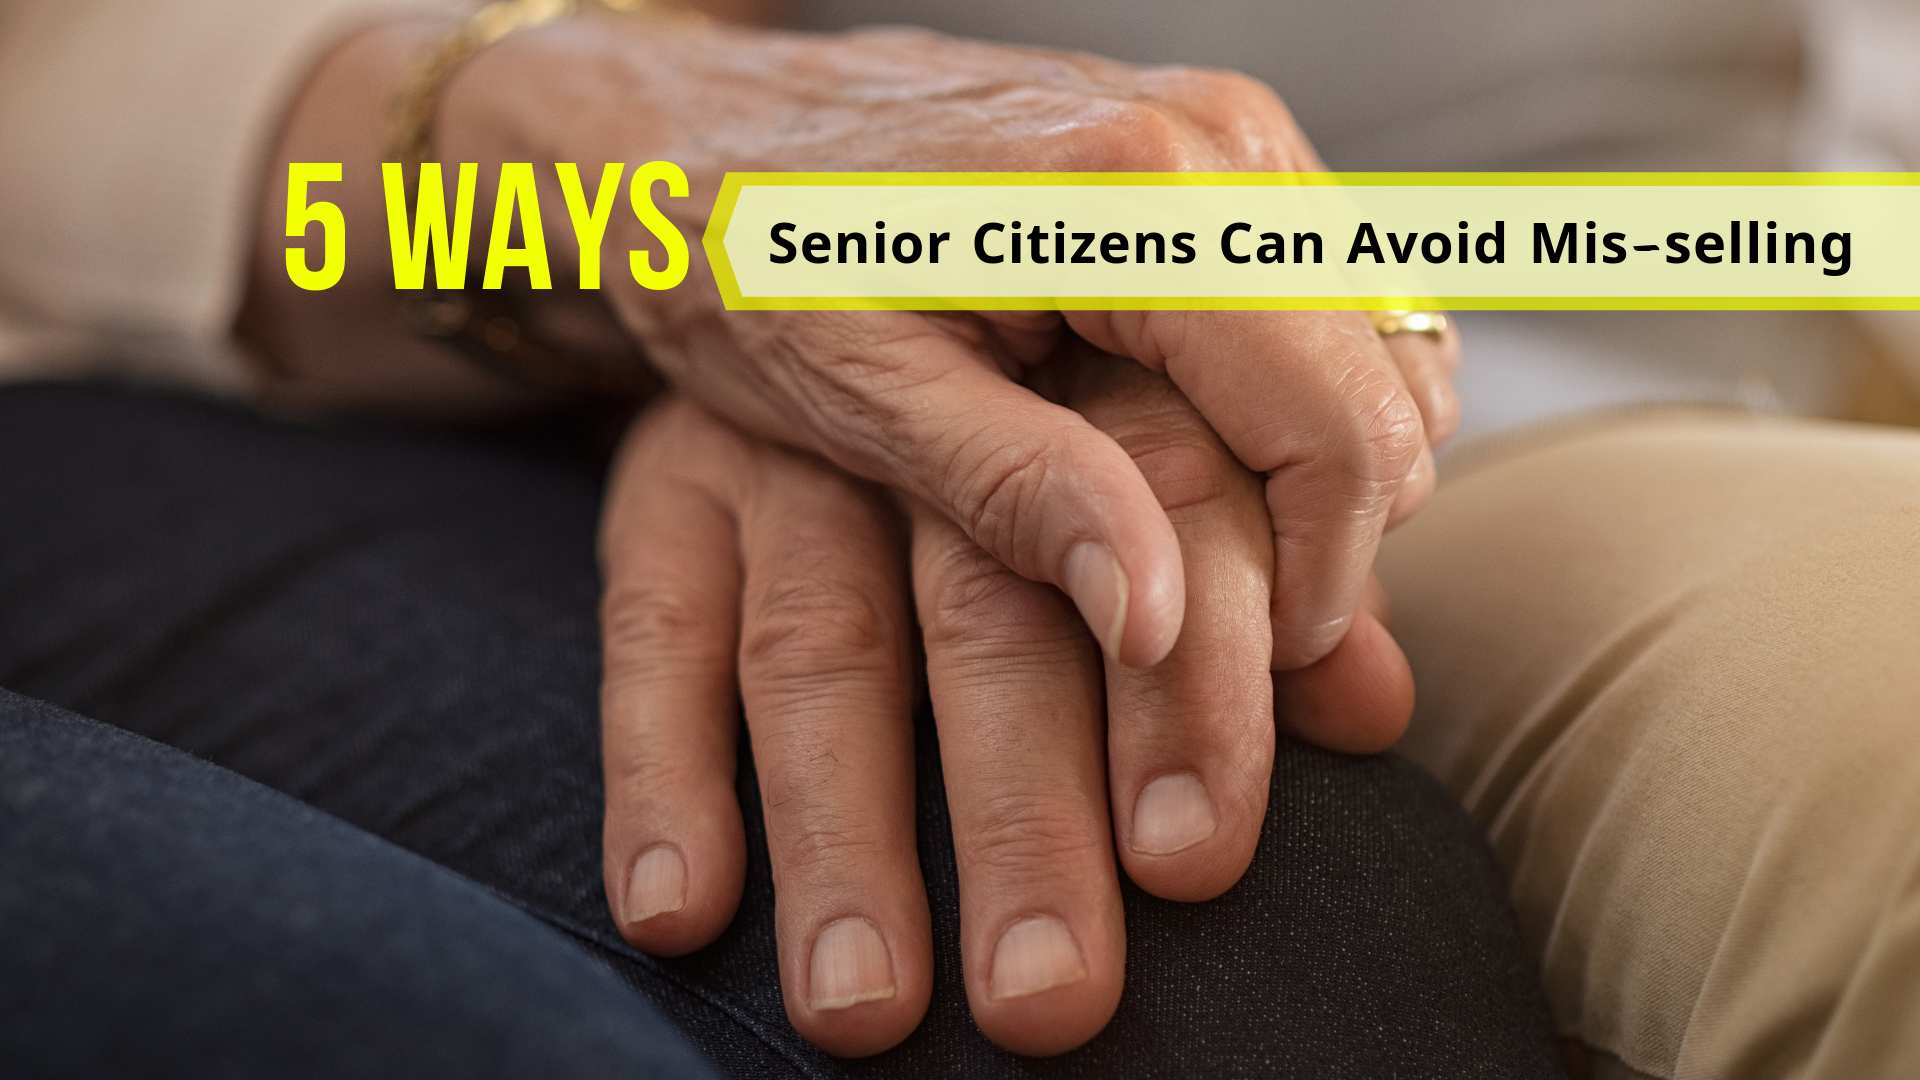 5 ways senior citizens can avoid being mis-sold an insurance policy